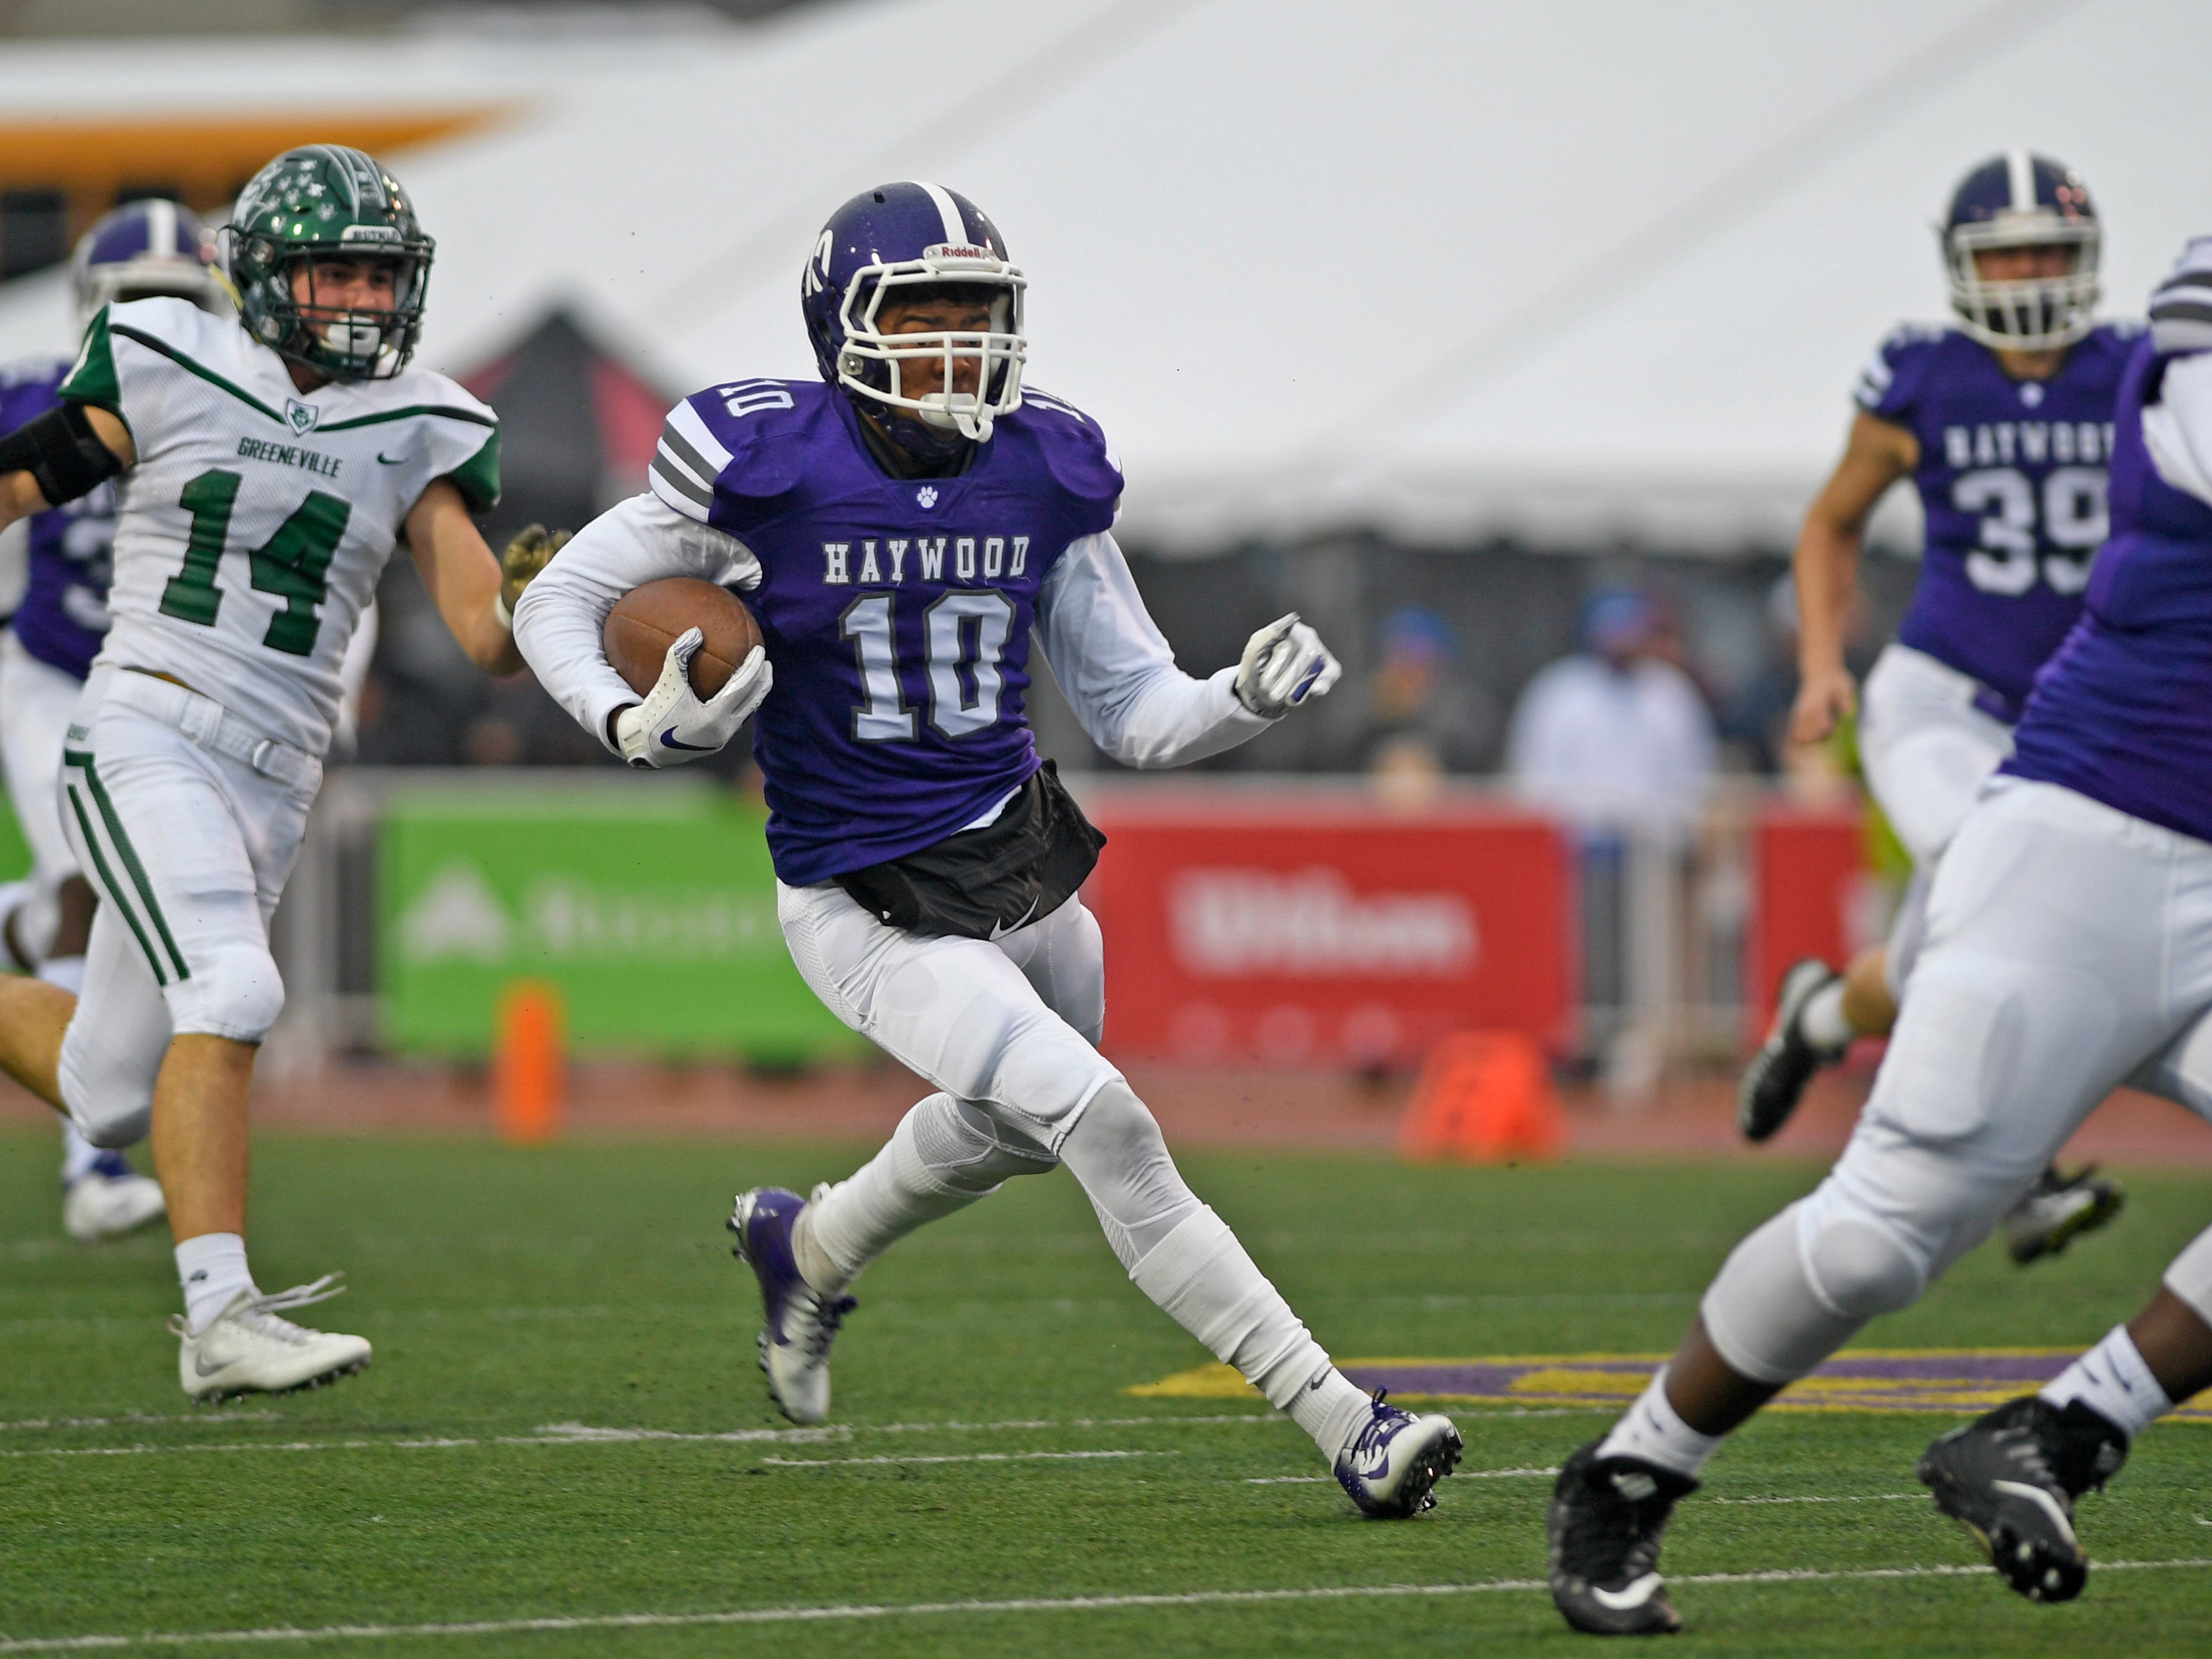 Haywood's Taylor Shields (10) runs the opening kickoiff back for a touchdown in the Class 4A BlueCross Bowl state championship at Tennessee Tech's Tucker Stadium in Cookeville, Tenn., on Thursday, Nov. 29, 2018.